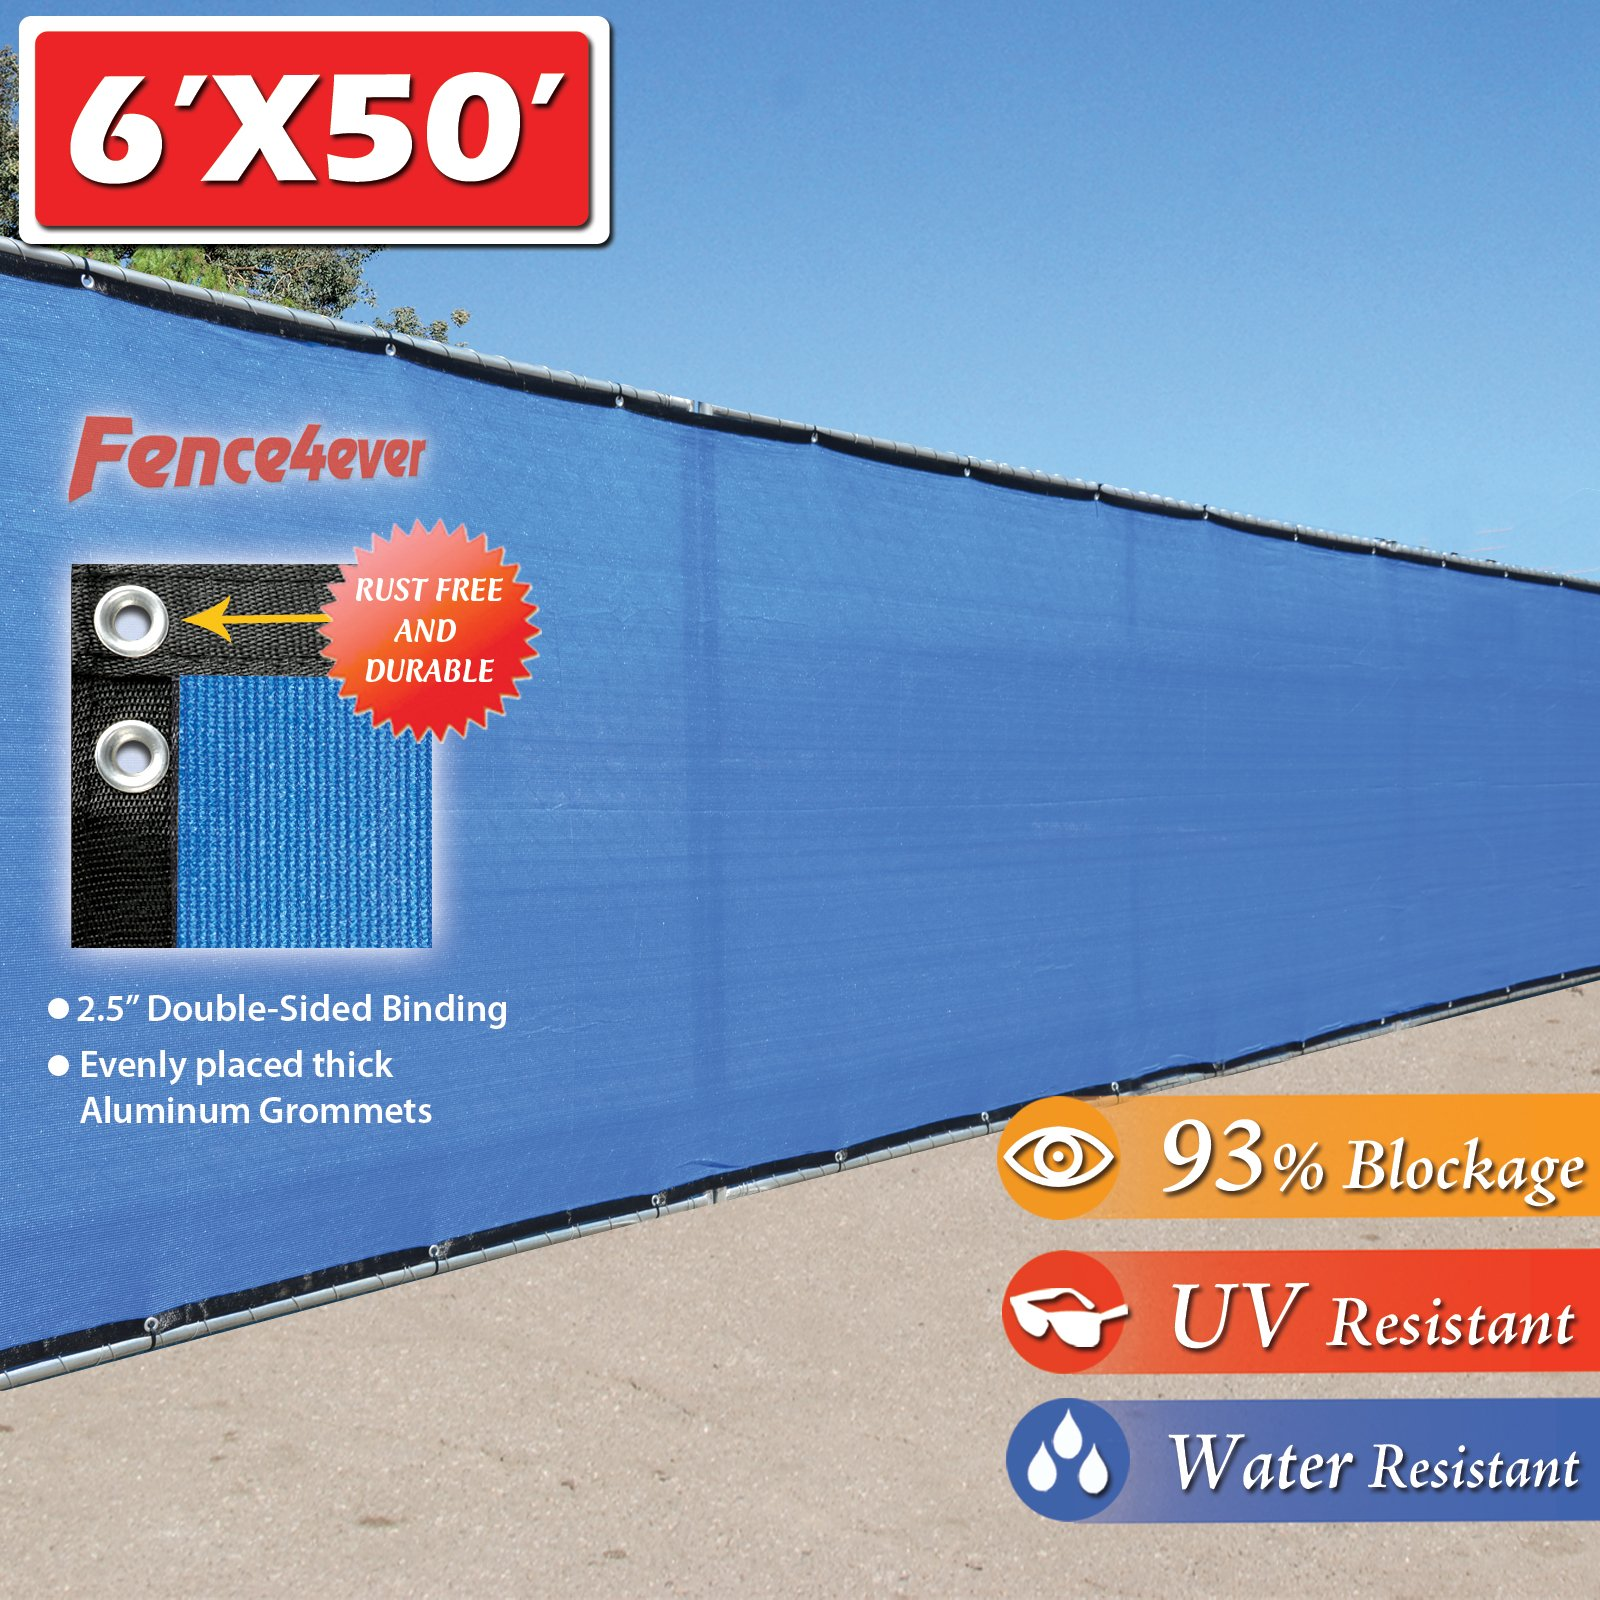 Fence4ever 6'x50' 6ft Tall 3rd Gen Royal Blue Fence Screen Privacy Screen Windscreen Shade Cover Mesh Fabric (Aluminum Grommets) Home, Court, or Pool